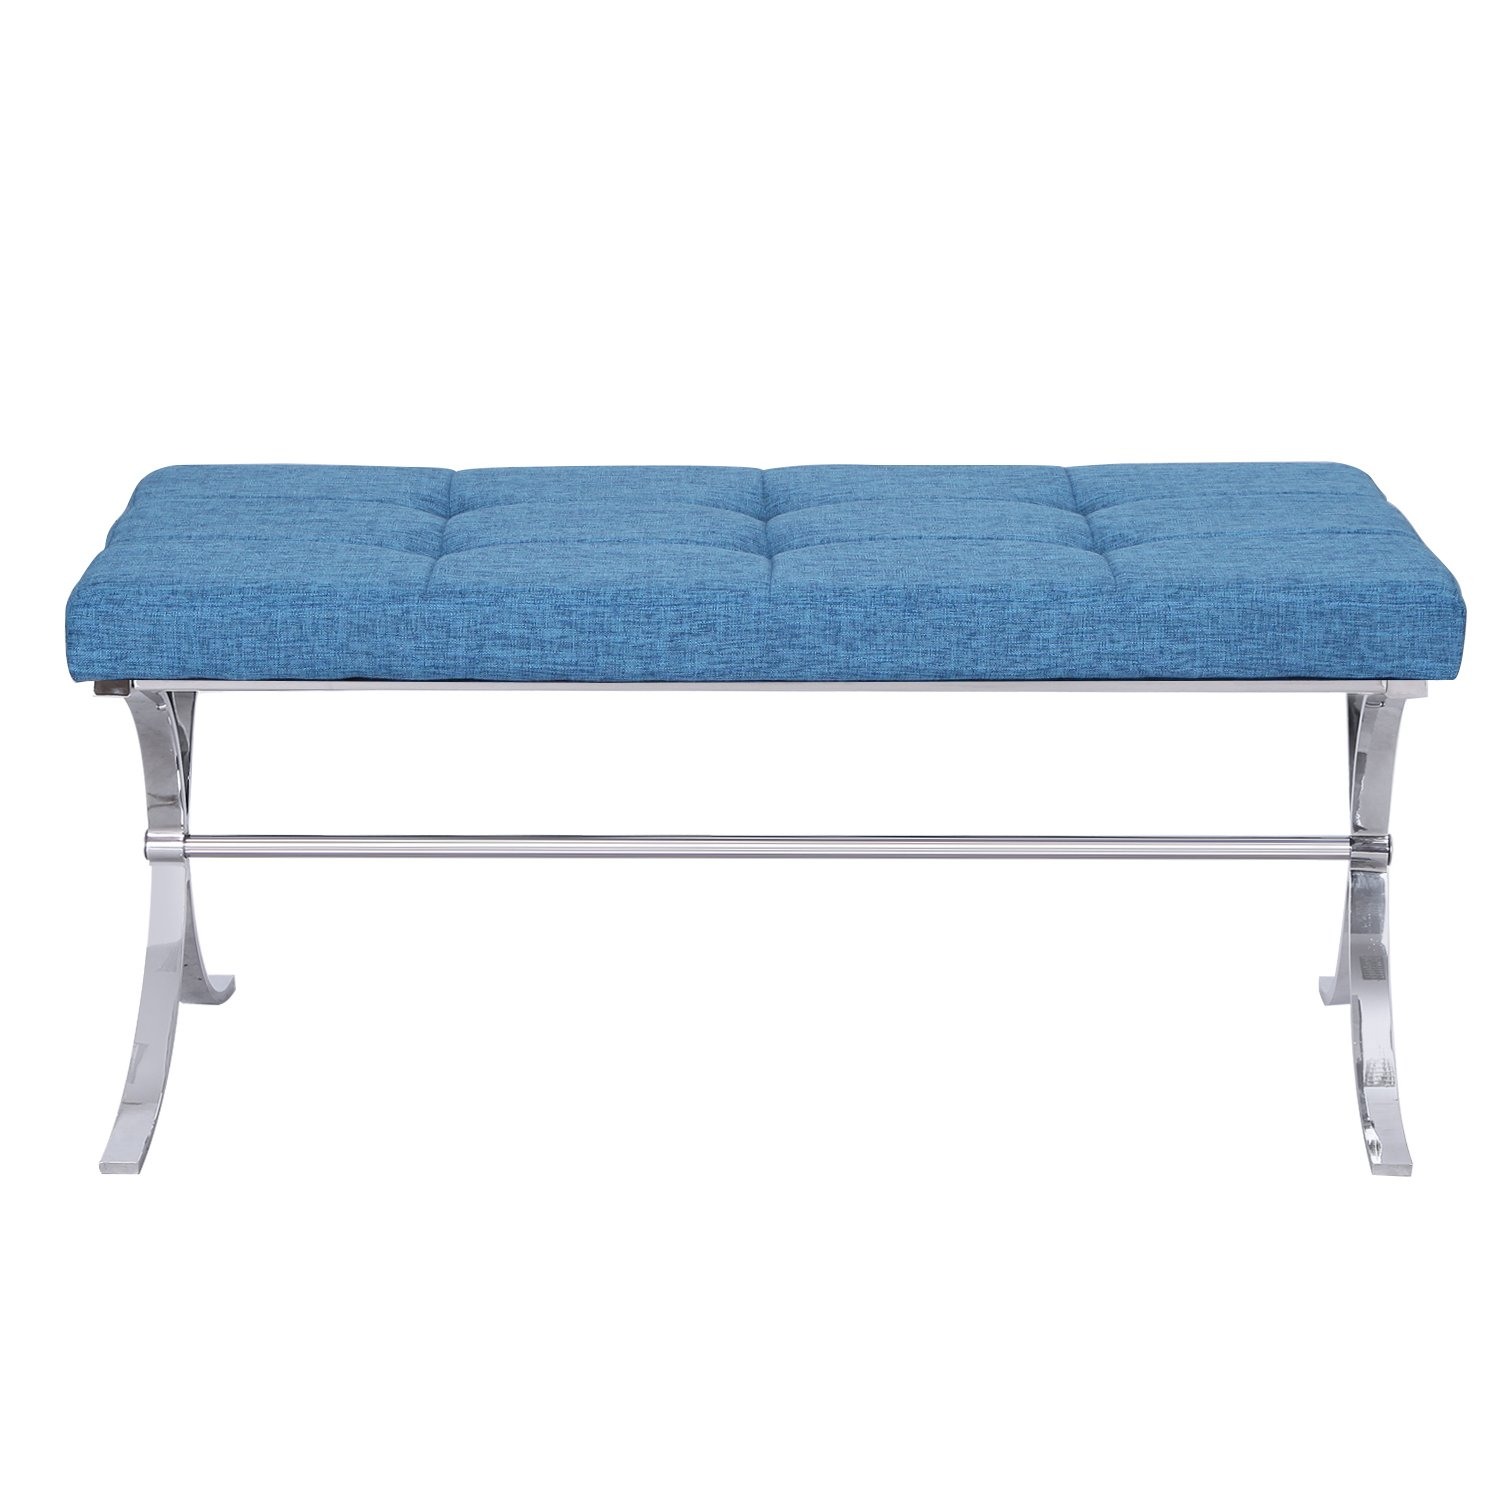 Adeco Metal Bench Entryway Footstool with Button, Tufted Linen Fabric - Blue